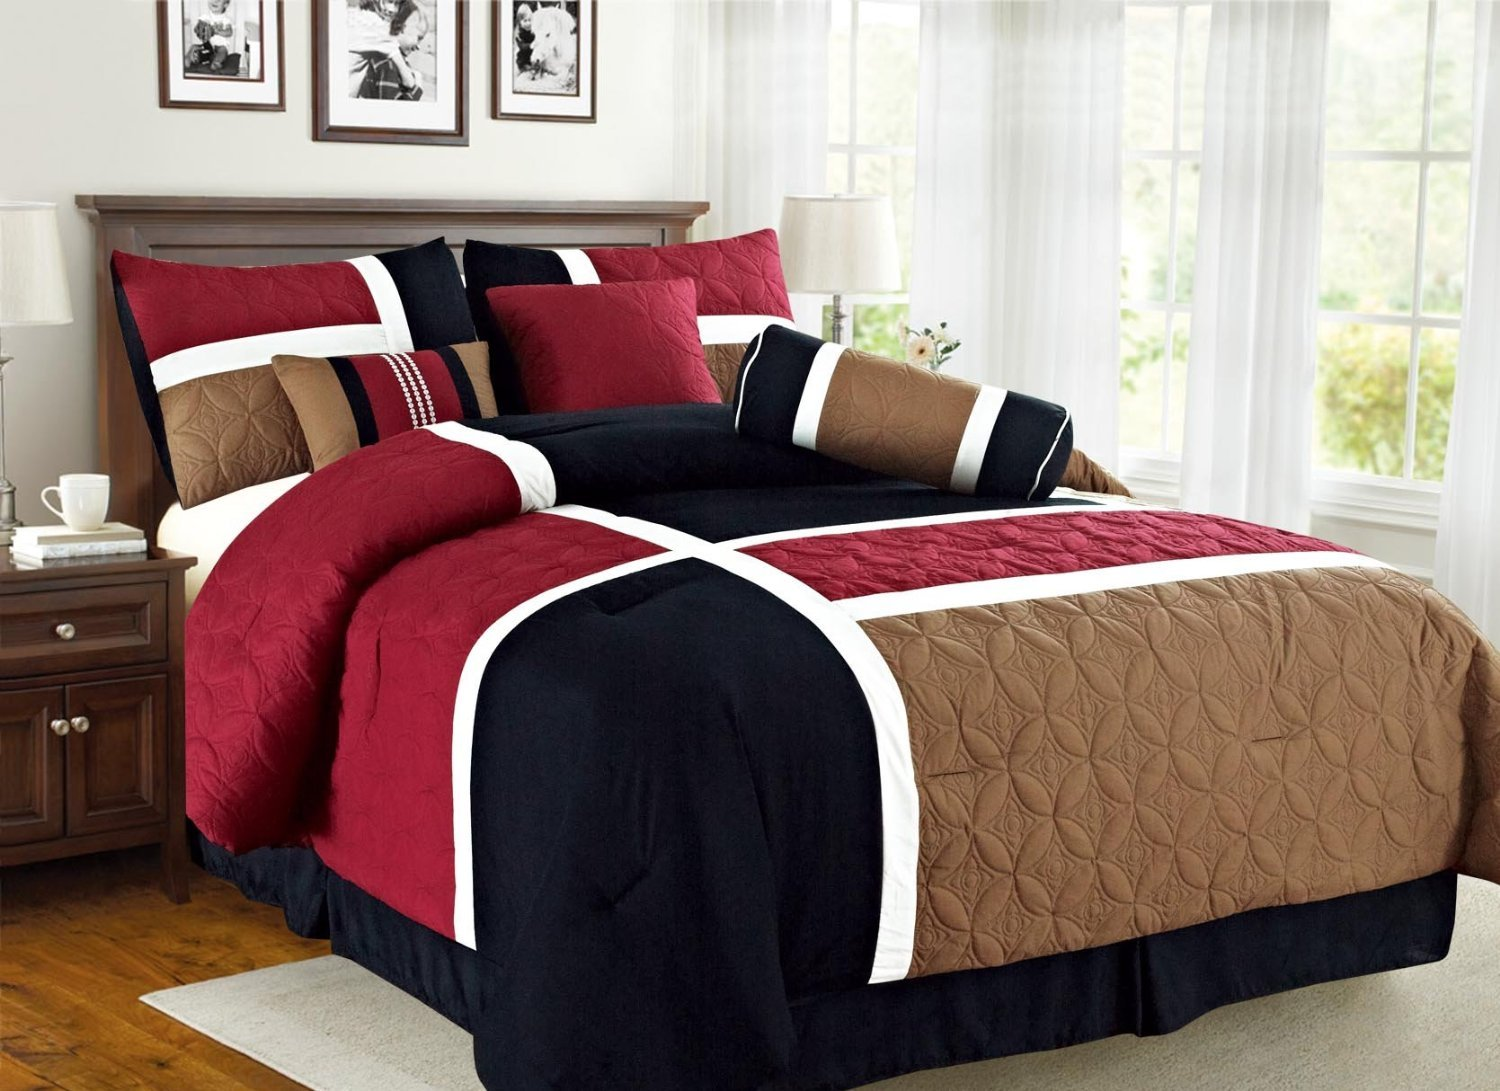 Empire Home Over-Stock Special Patchwork 7 Piece comforter set Oversized - On Sale Till End of Month ONLY (Queen Size, Burgundy & Black)